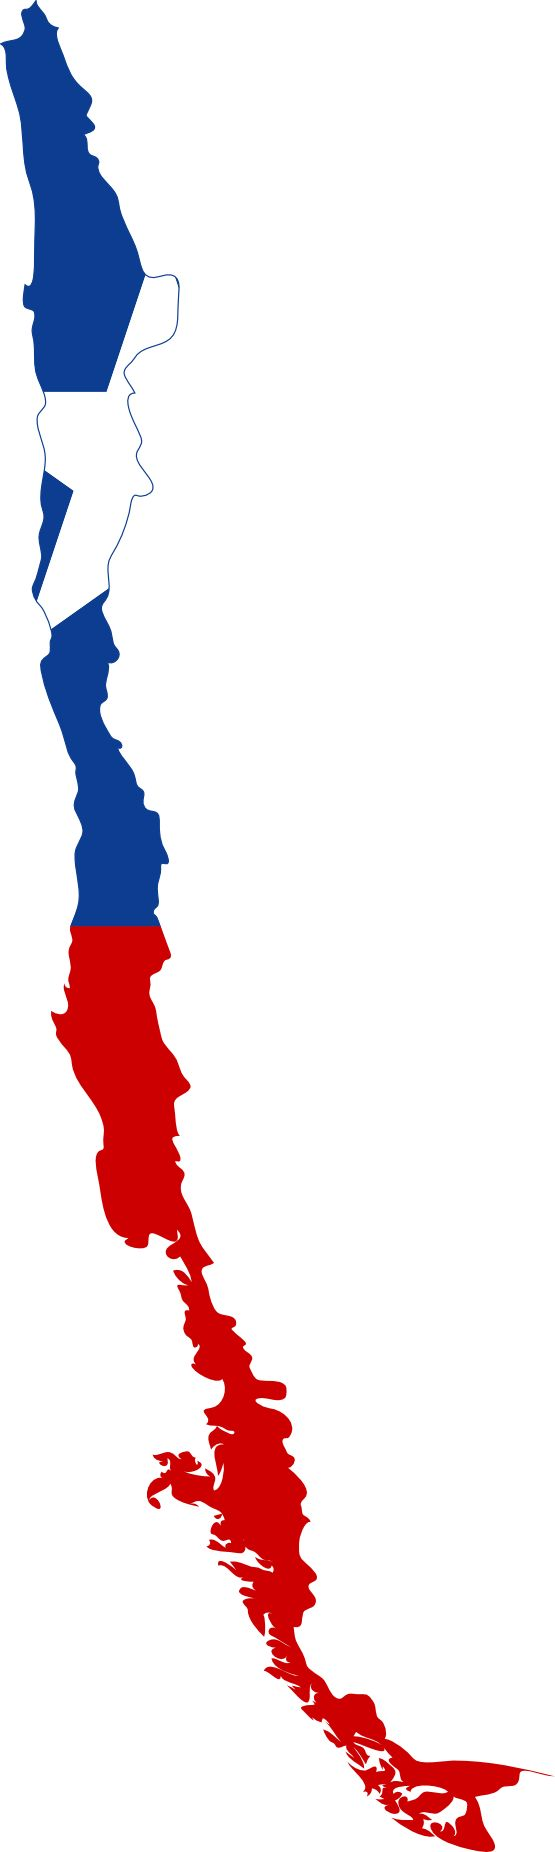 Chile Clip Art   Flag Map of Chile Flags 2011 Clip Art SVG openclipart.org commons ...